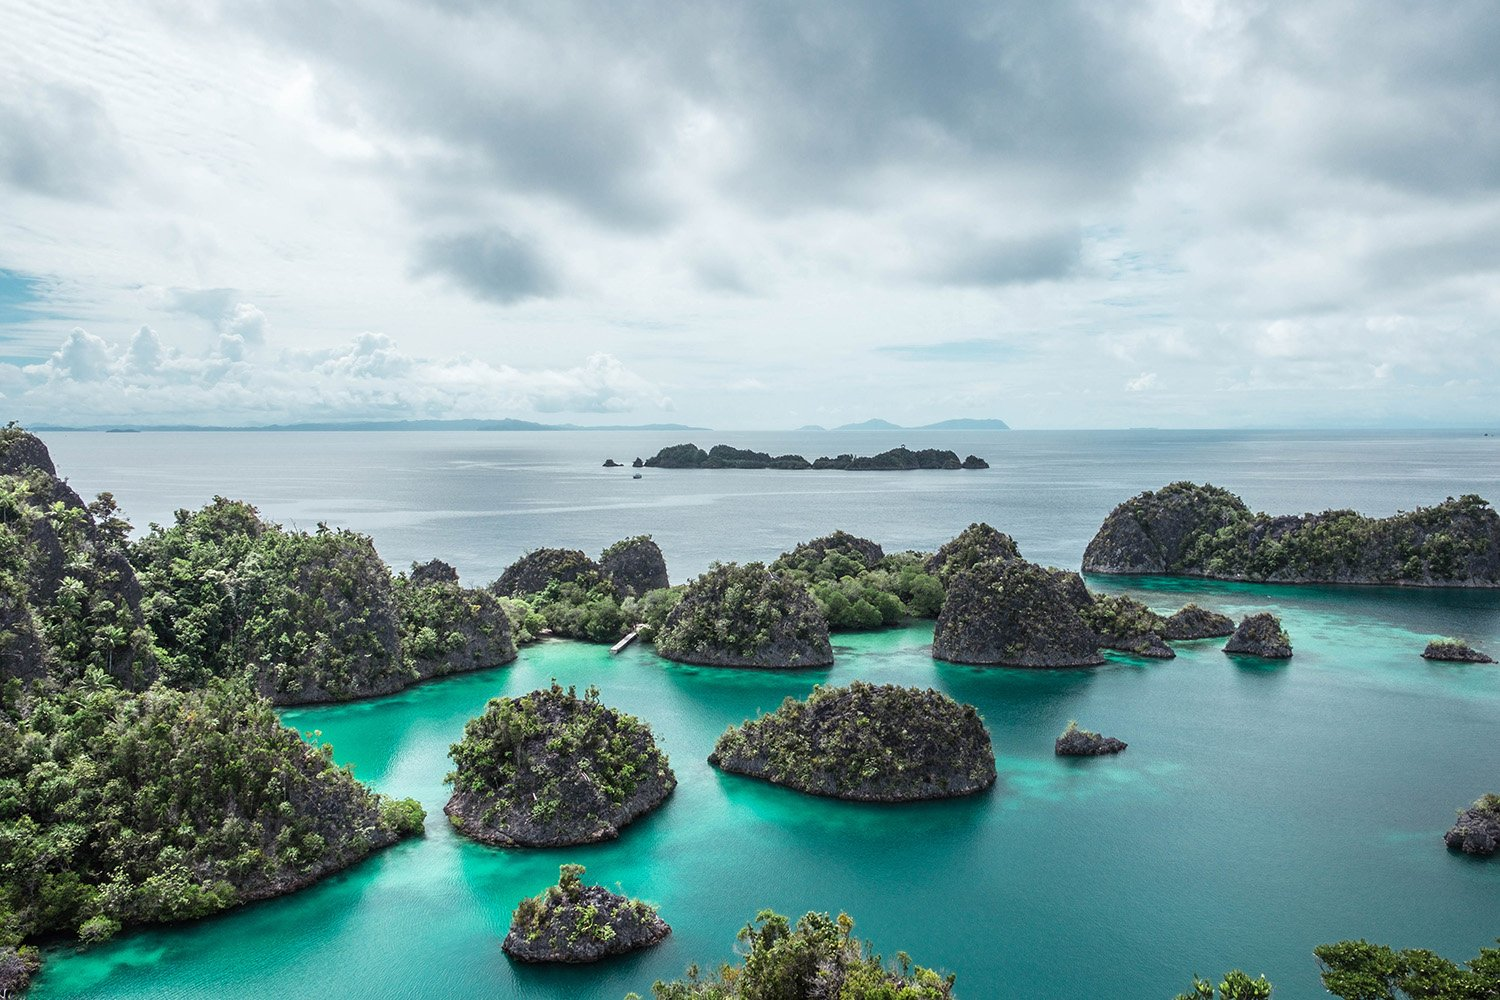 Islands from the top in Raja Ampat